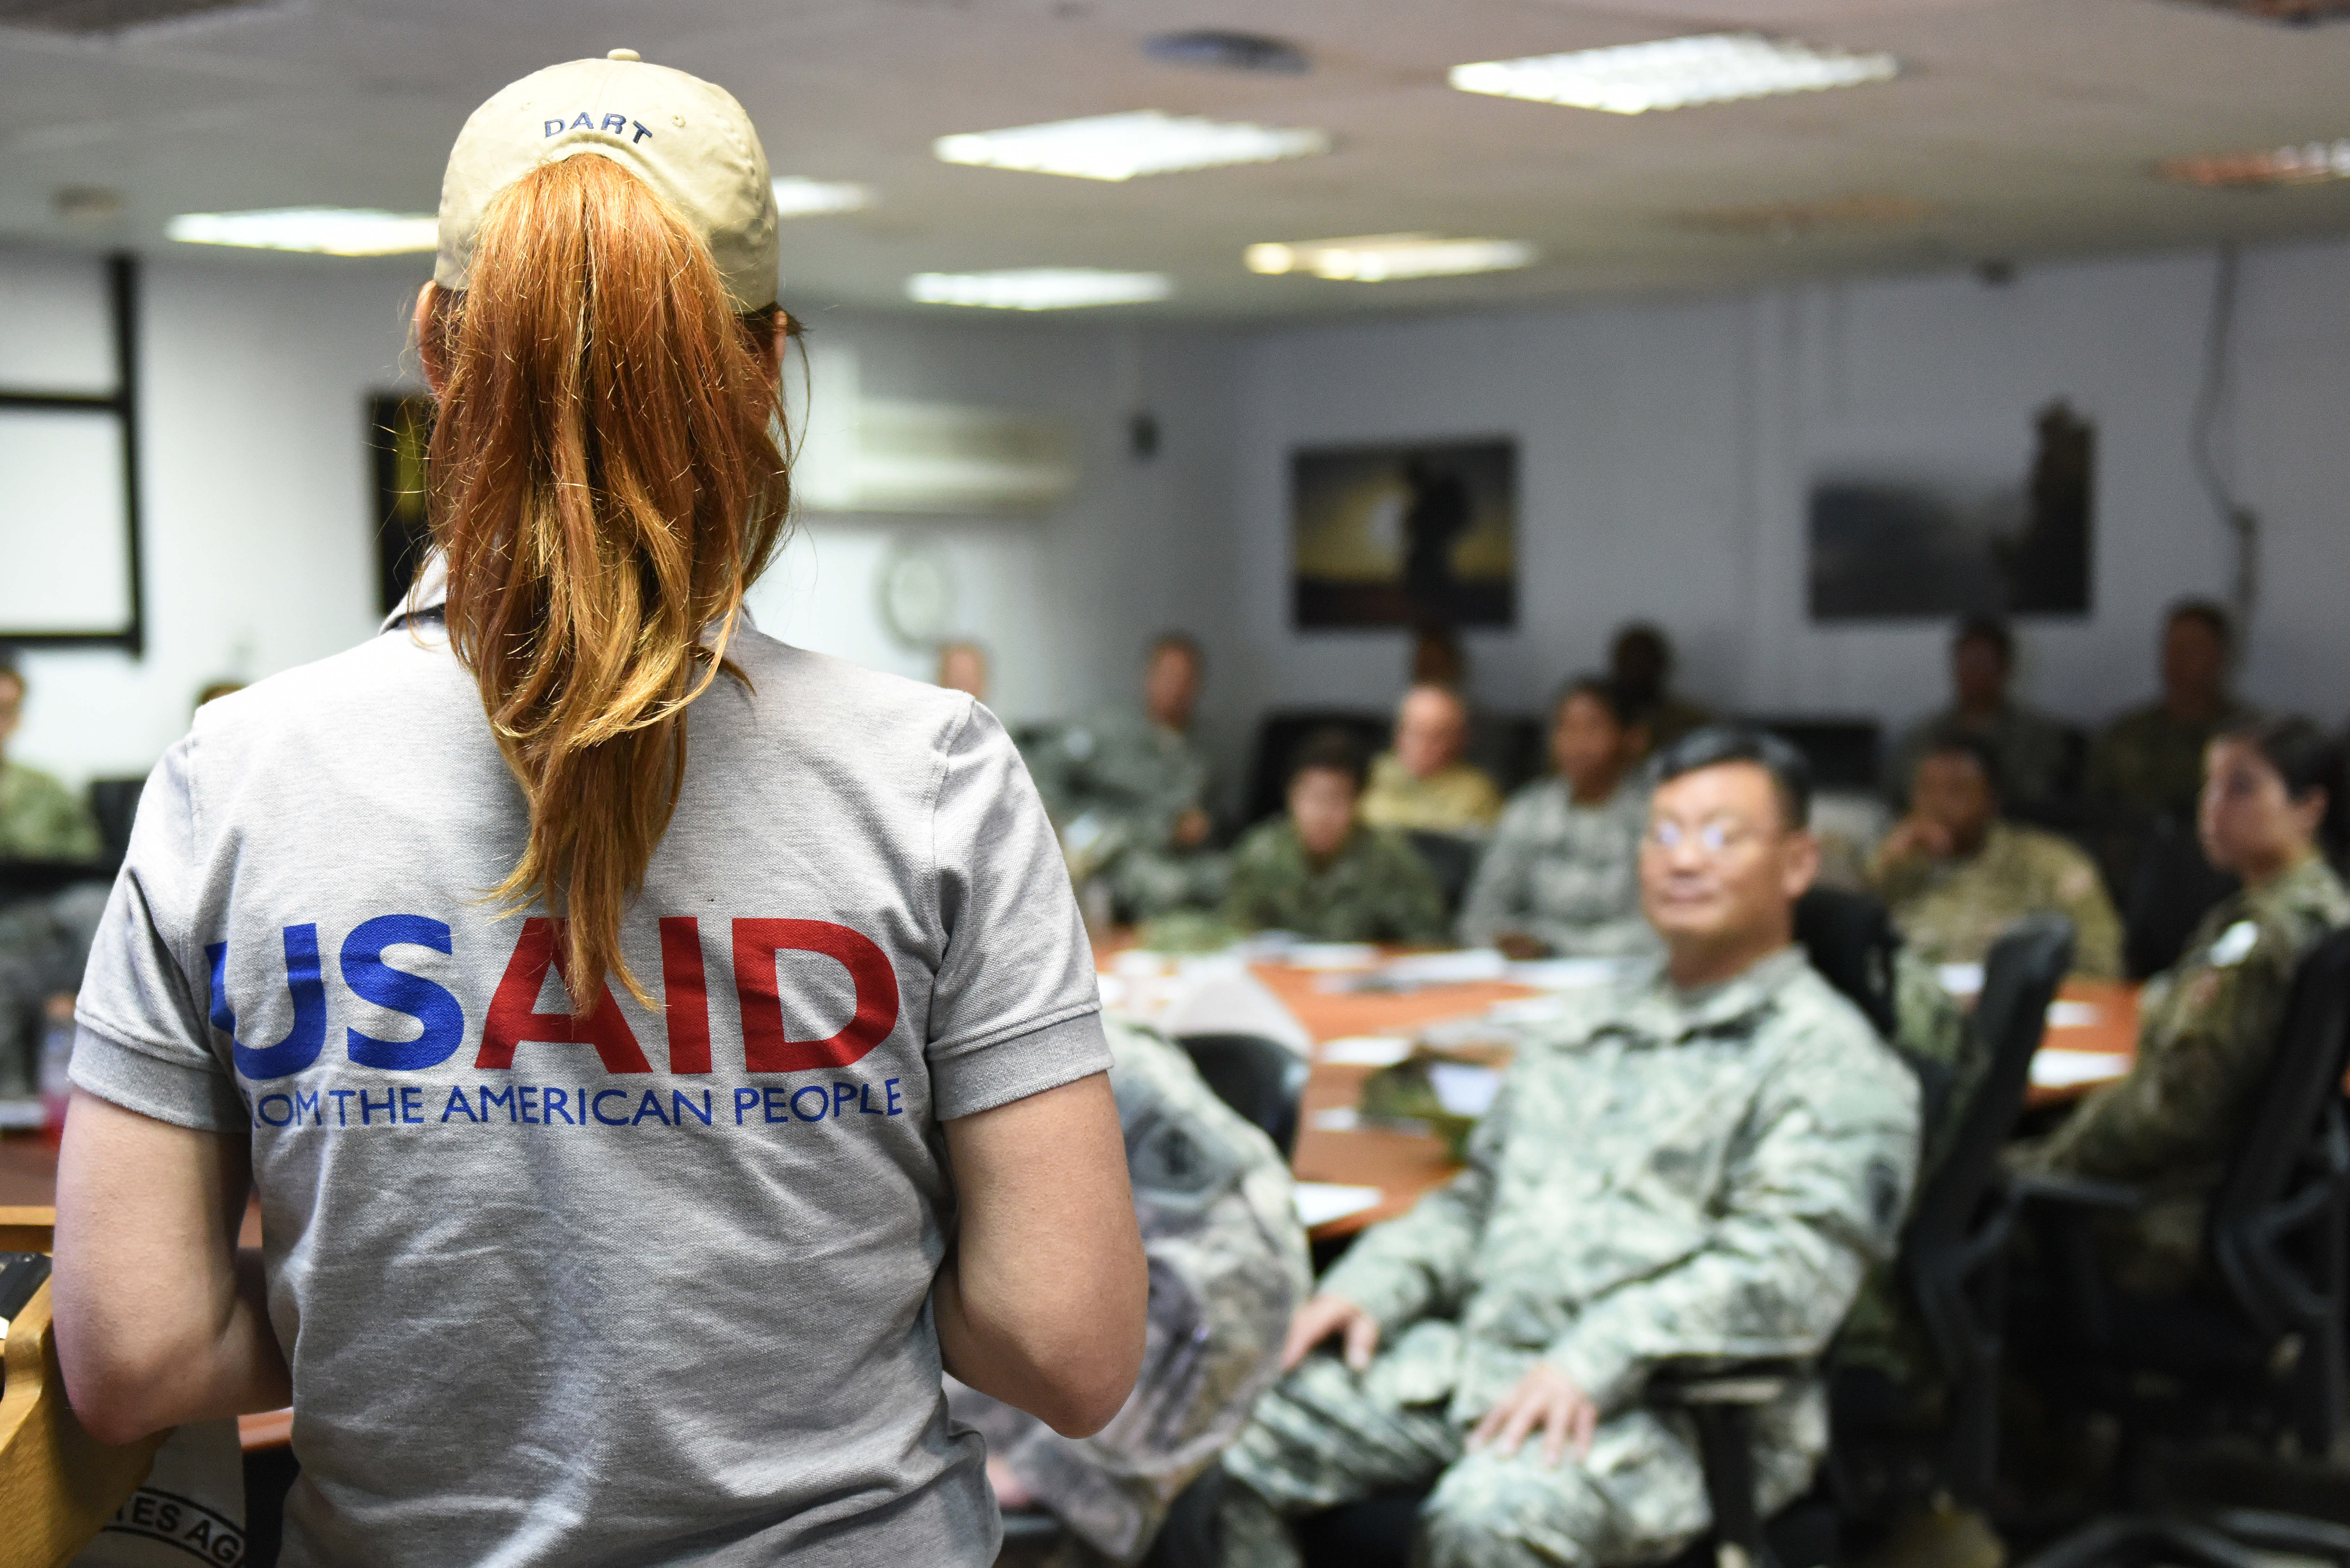 Micaela White, Africa Command humanitarian assistance advisor instructs a joint humanitarian operations course at Camp Lemonnier, Djibouti June 1, 2015.  Course attendees learned about the relationship between USAID's Office of U.S. Foreign Disaster Assistance, its partners and the U.S. military, and learned about humanitarian assistance and disaster response operations.  (U.S. Air Force photo by Staff Sgt. Maria Bowman)